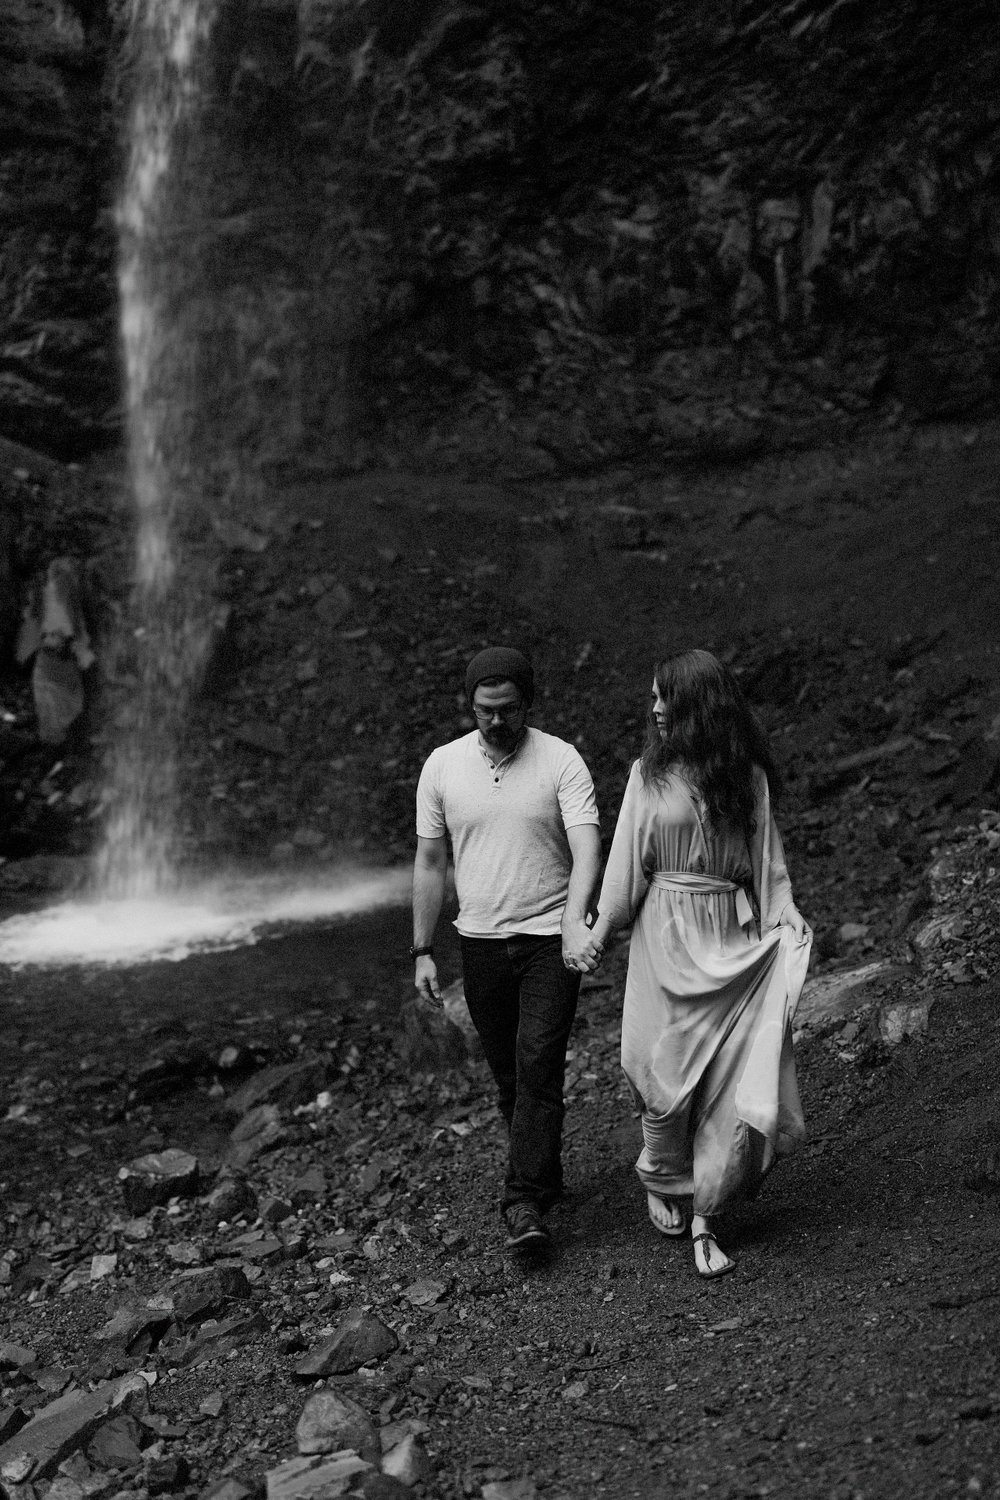 cornet-falls-telluride-adventure-session-20.jpg